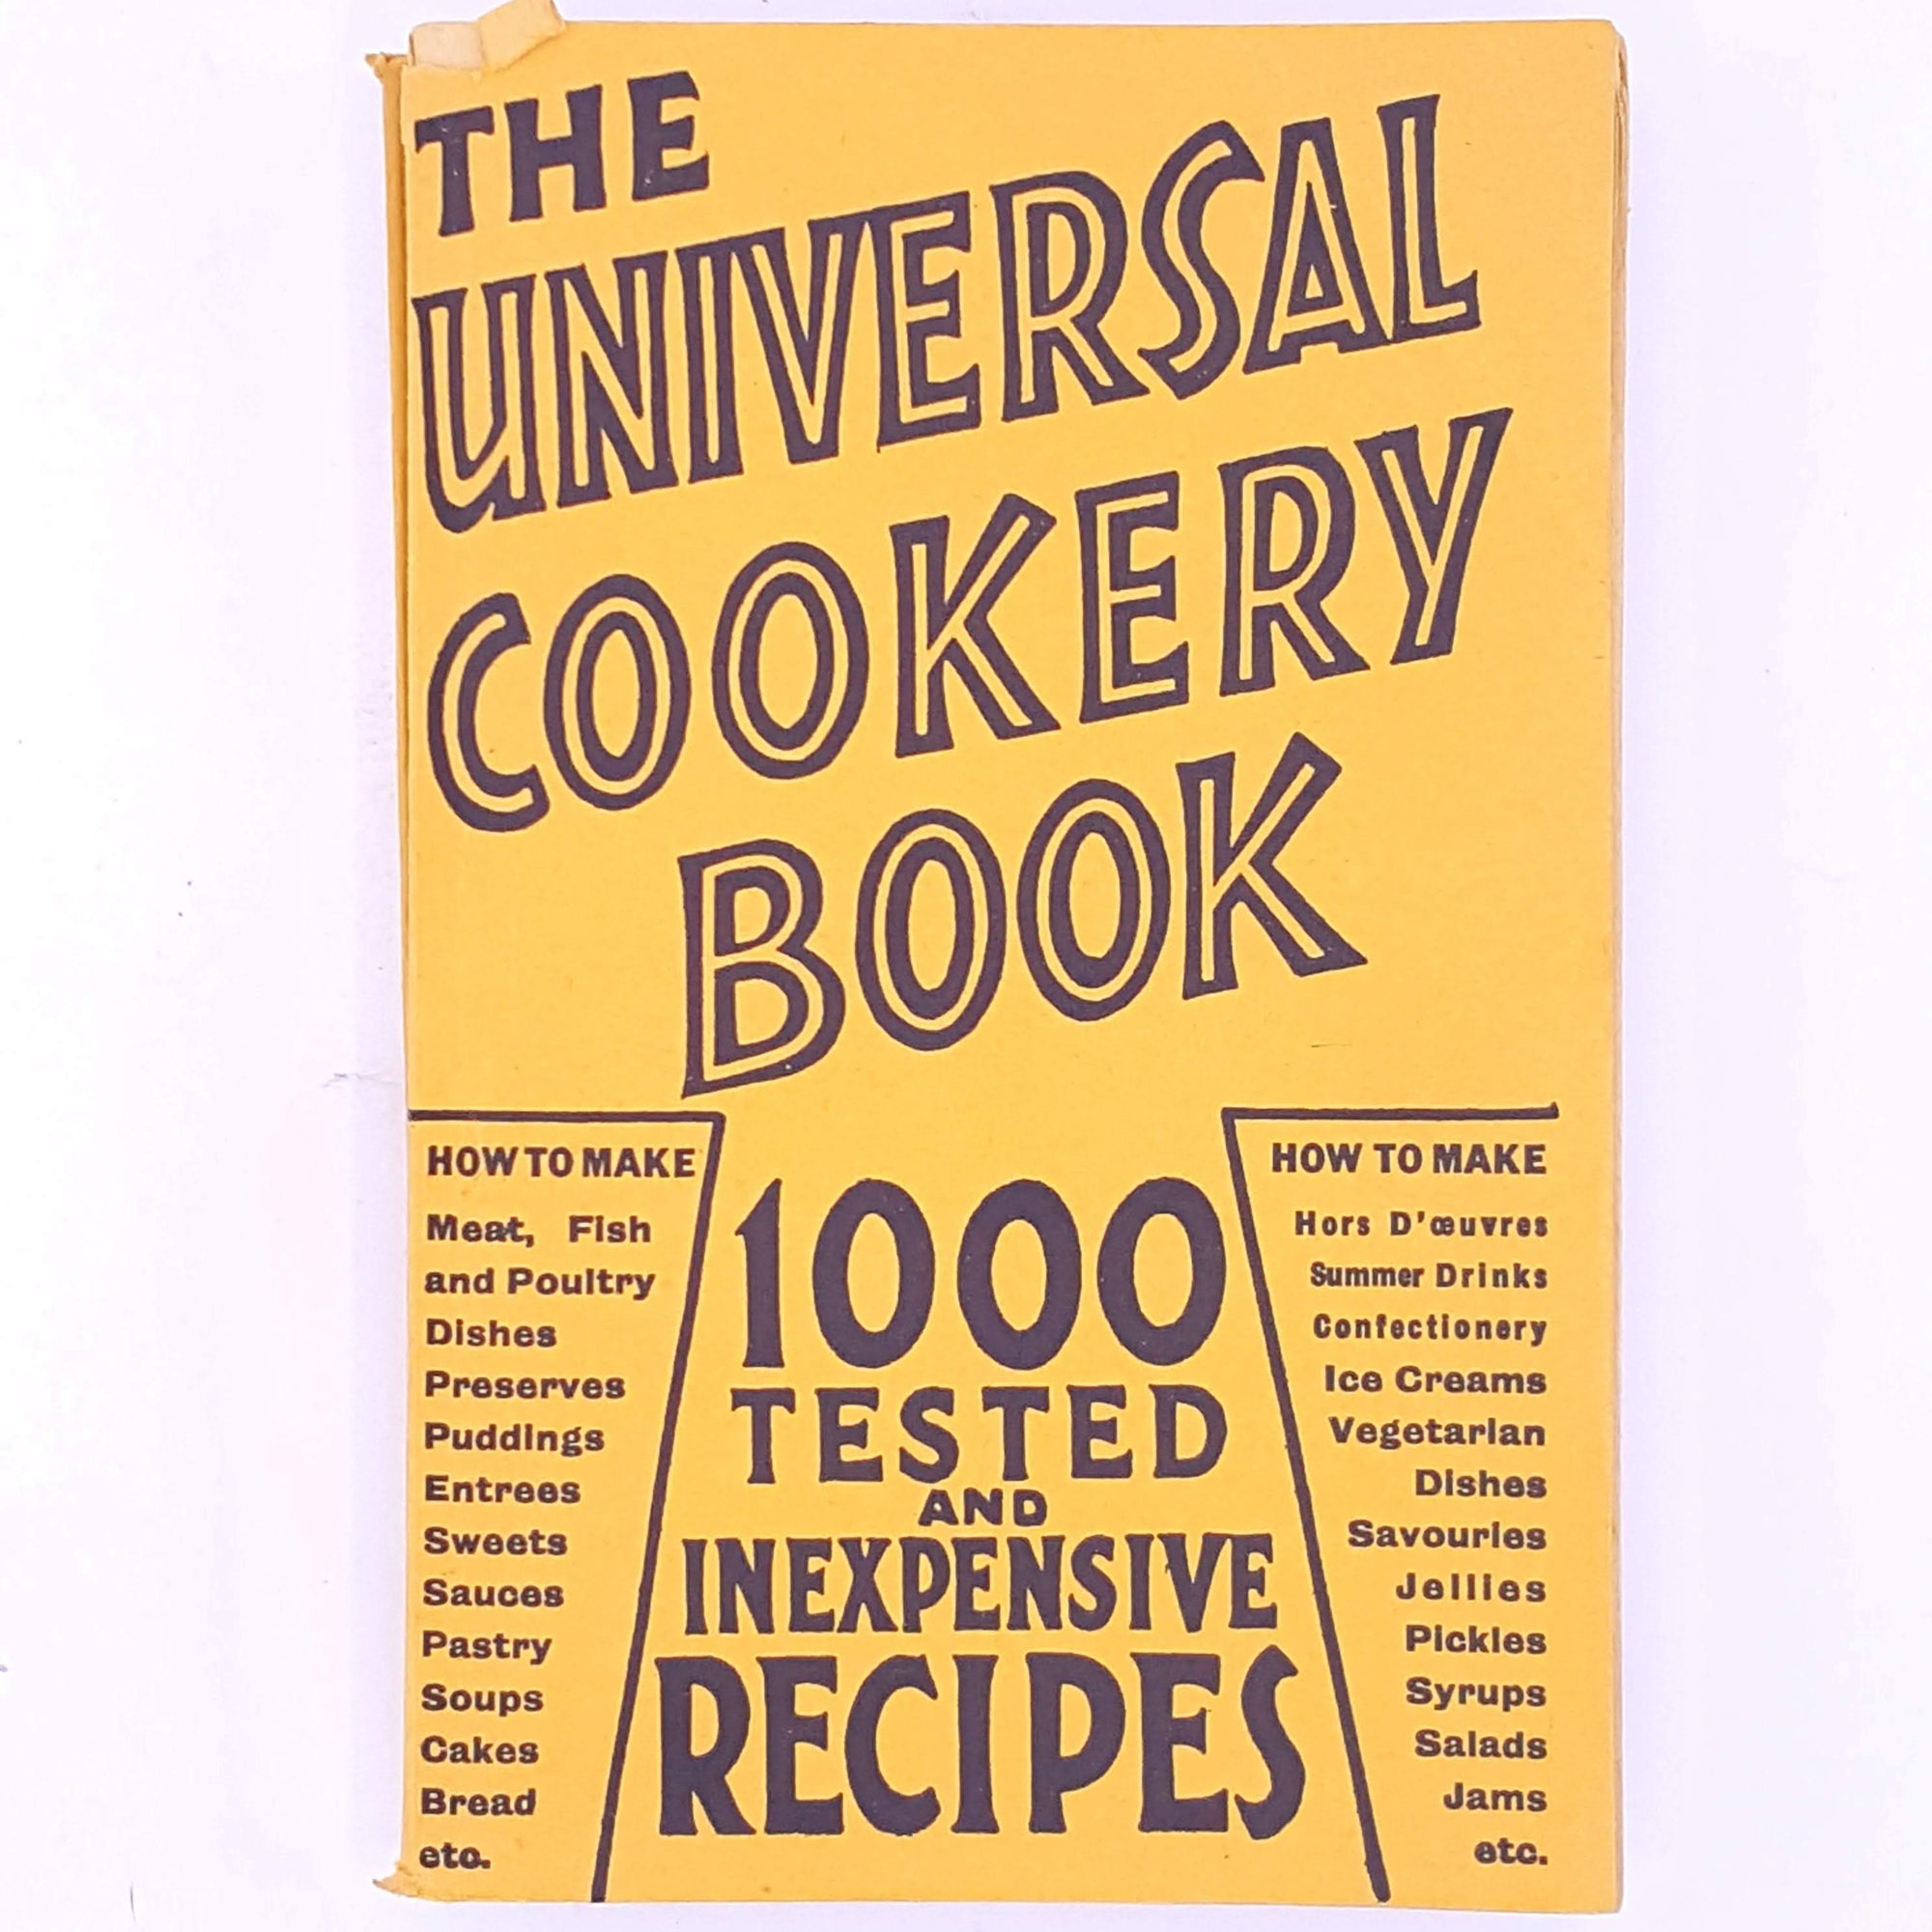 antique-christmas gifts-The-Universal-Cookery-Book-recipes-cooking-books-decorative-thrift-country-house-library-old-patterned-baking-vintage-for-foodies-cookbooks-classic-